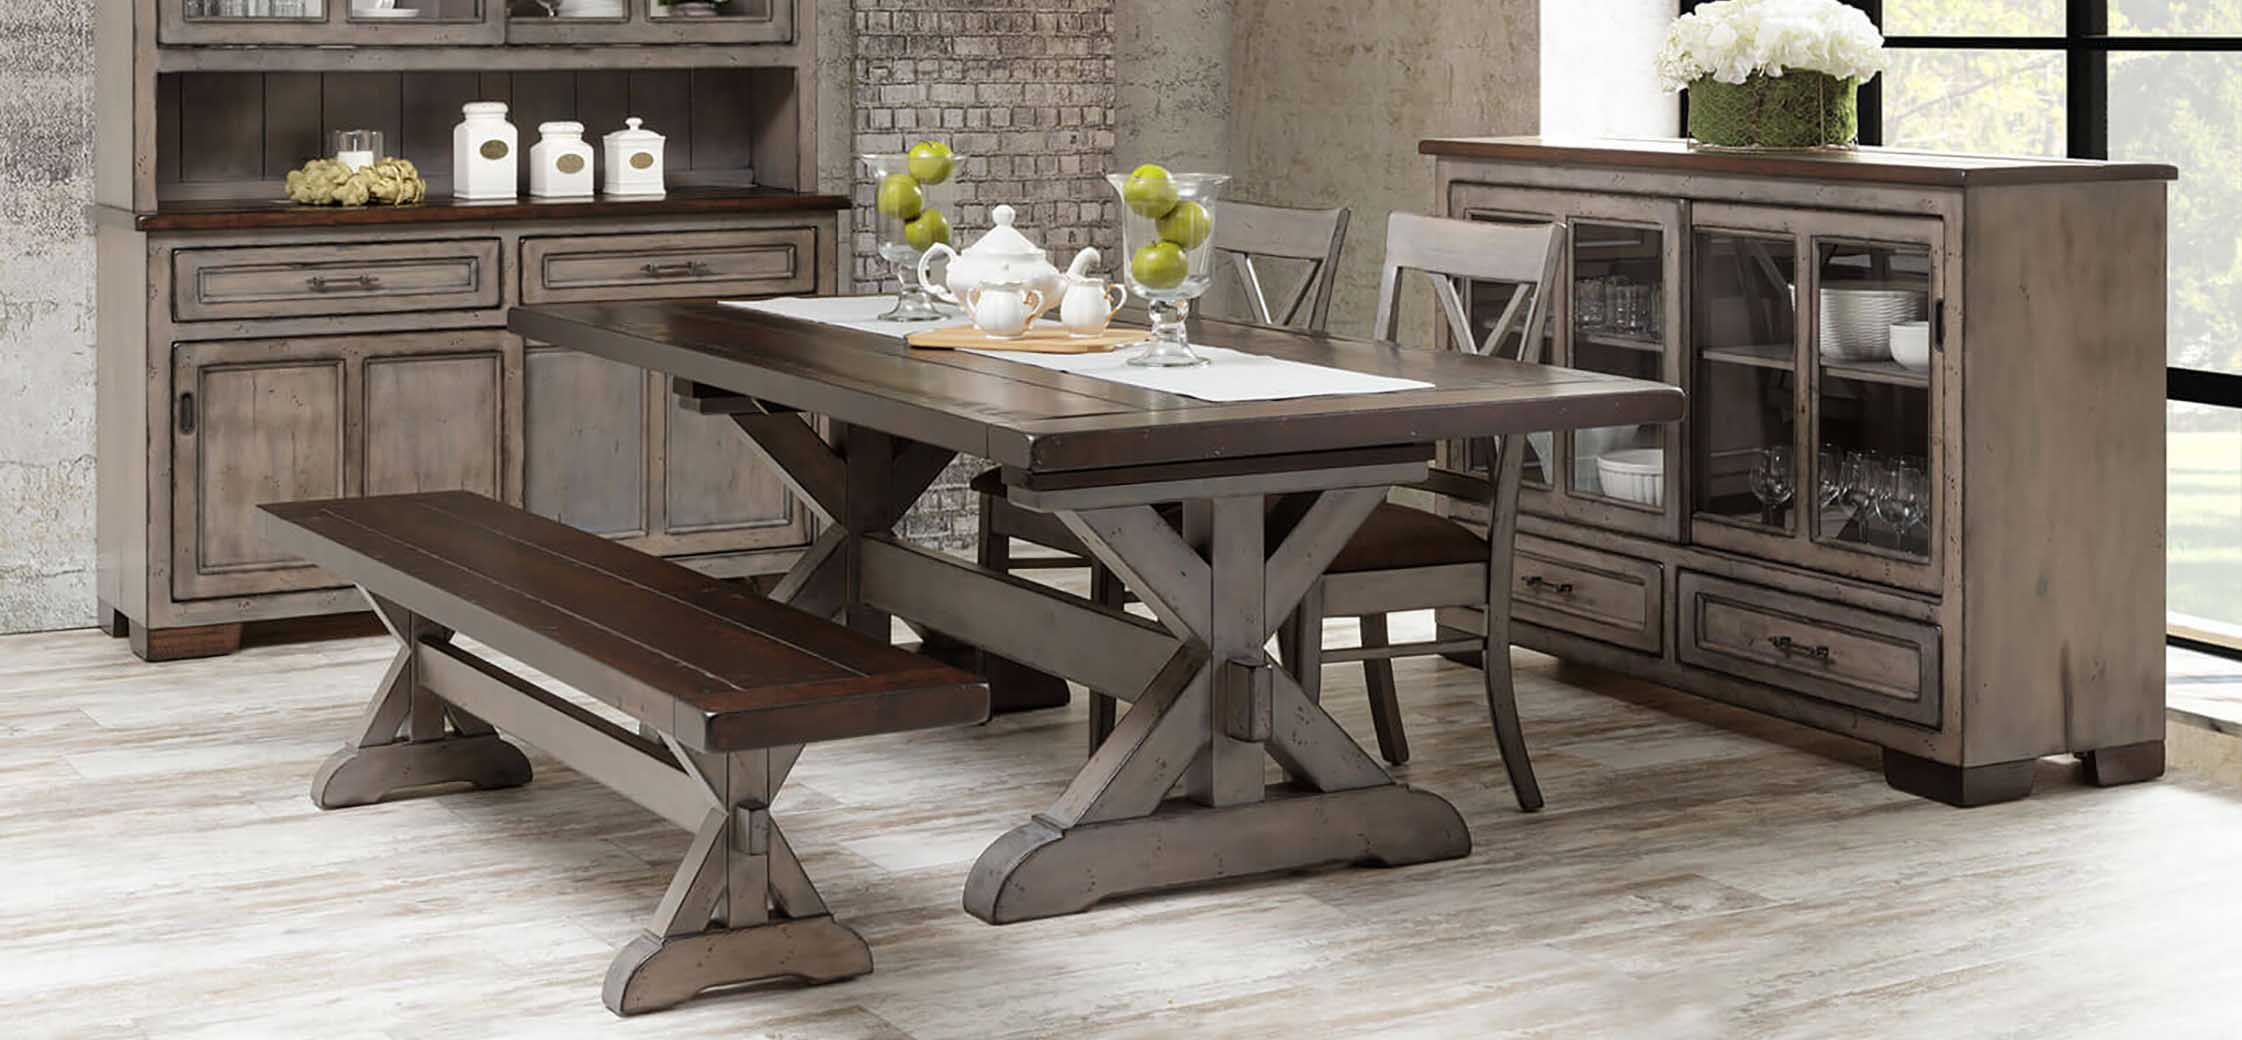 lifetime chairs and tables louis ghost chair design year snyder's furniture | lancaster county pa amish stores